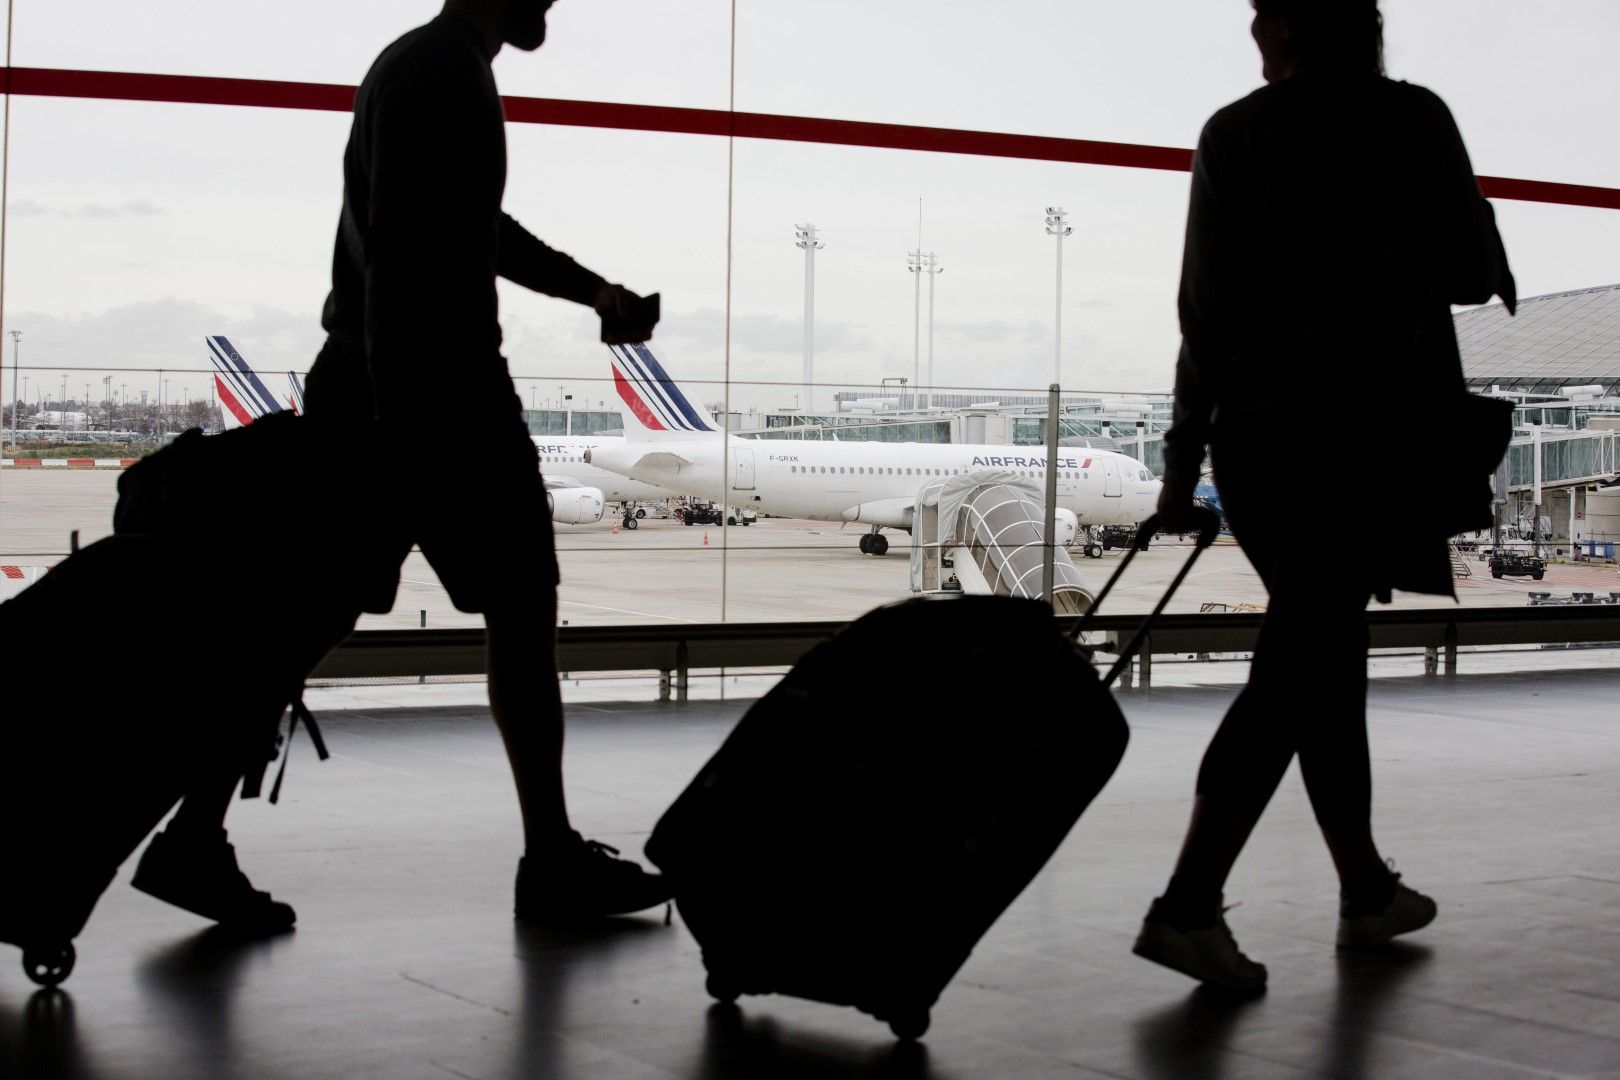 Passengers pull their luggage inside a terminal building as an Air France aircraft, operated by Air France-KLM Group, stand on the tarmac beyond, at Charles de Gaulle airport, operated by Aeroports de Paris, in Paris, France, on Thursday, Jan. 28, 2016. Air France-KLM Group Chief Executive Officer Alexandre De Juniac is negotiating with unions representing cabin and ground crews at the Air France brand and Dutch division KLM, as well as pilots at the French unit, after pulling a plan to expand its Transavia low-cost arm across Europe. Photographer: Marlene Awaad/Bloomberg